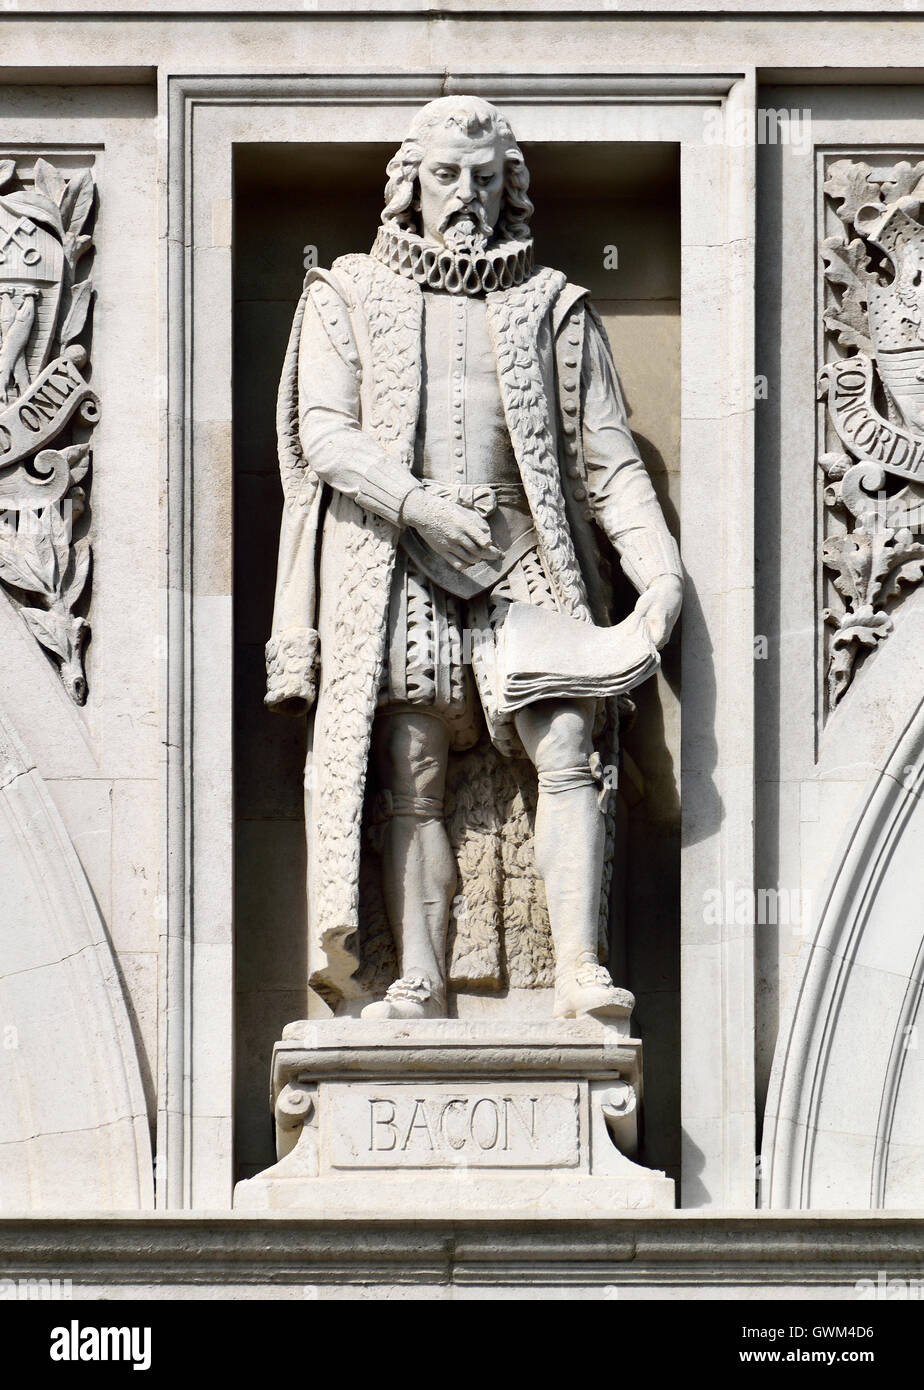 London, England, UK. City of London School, Victoria Embankment. Statue on facade: Francis Bacon - Stock Image